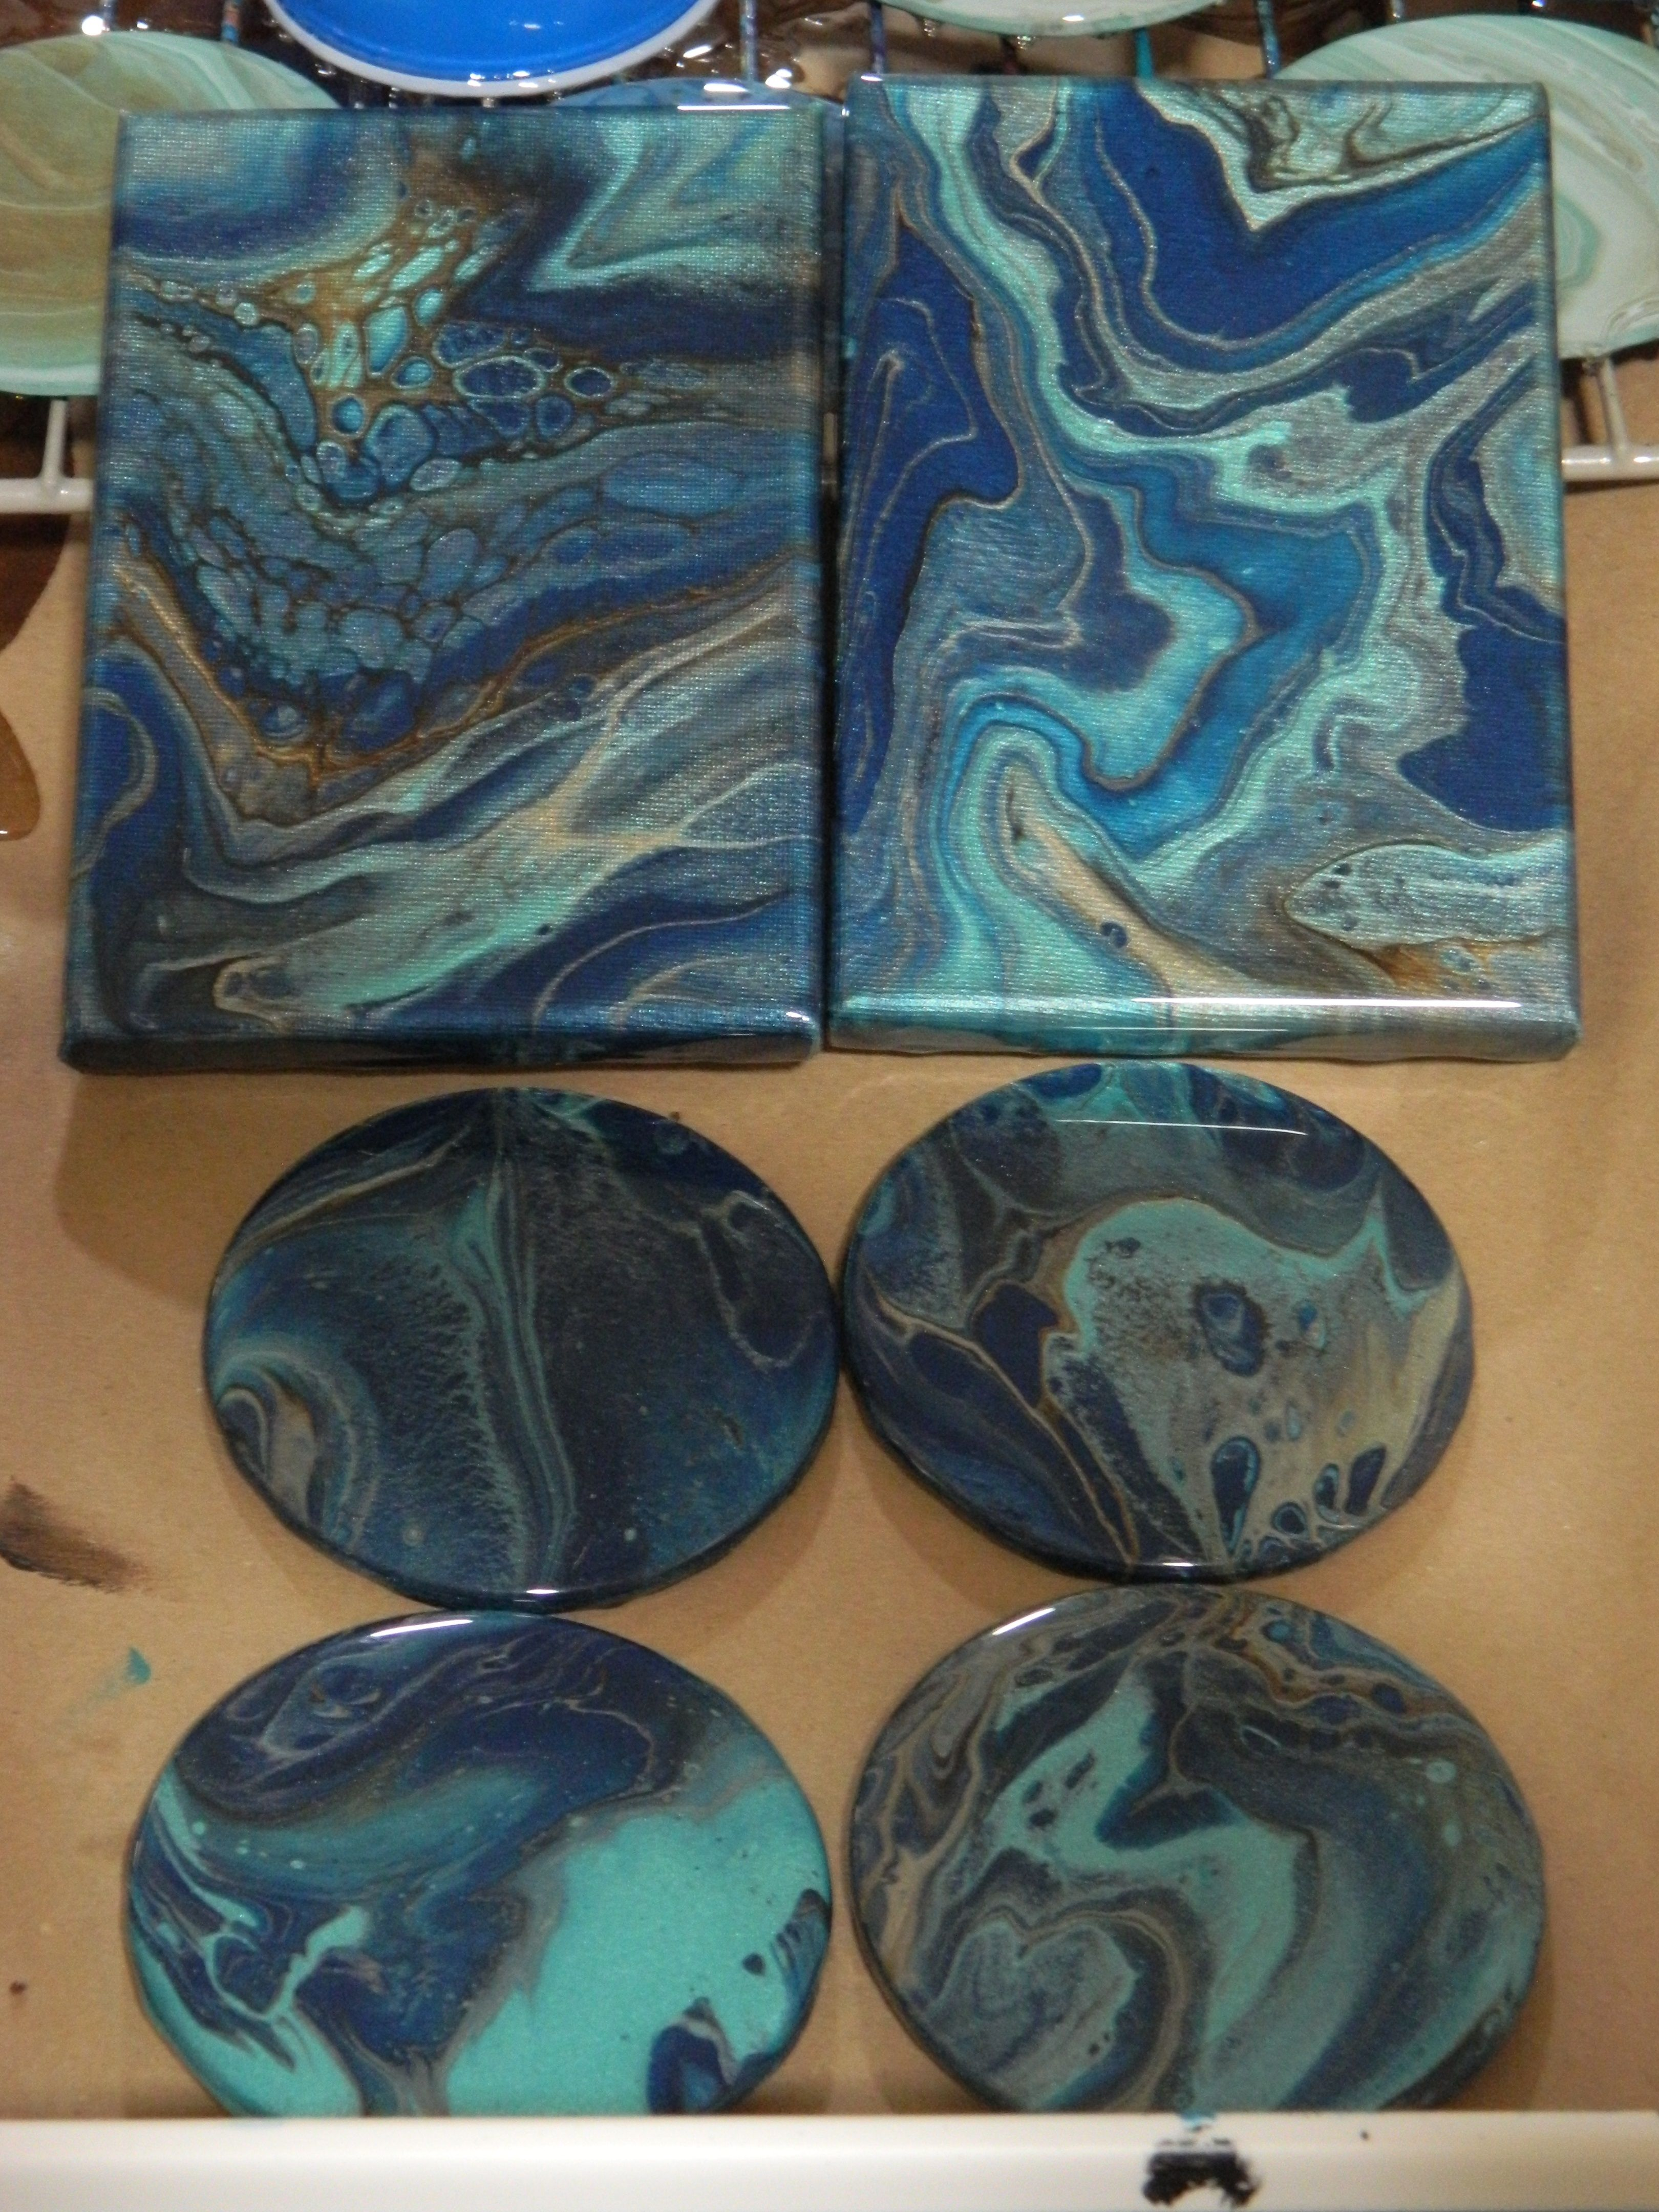 Pin By Tracey On Funny Diy Resin Art Resin Crafts Diy Resin Crafts